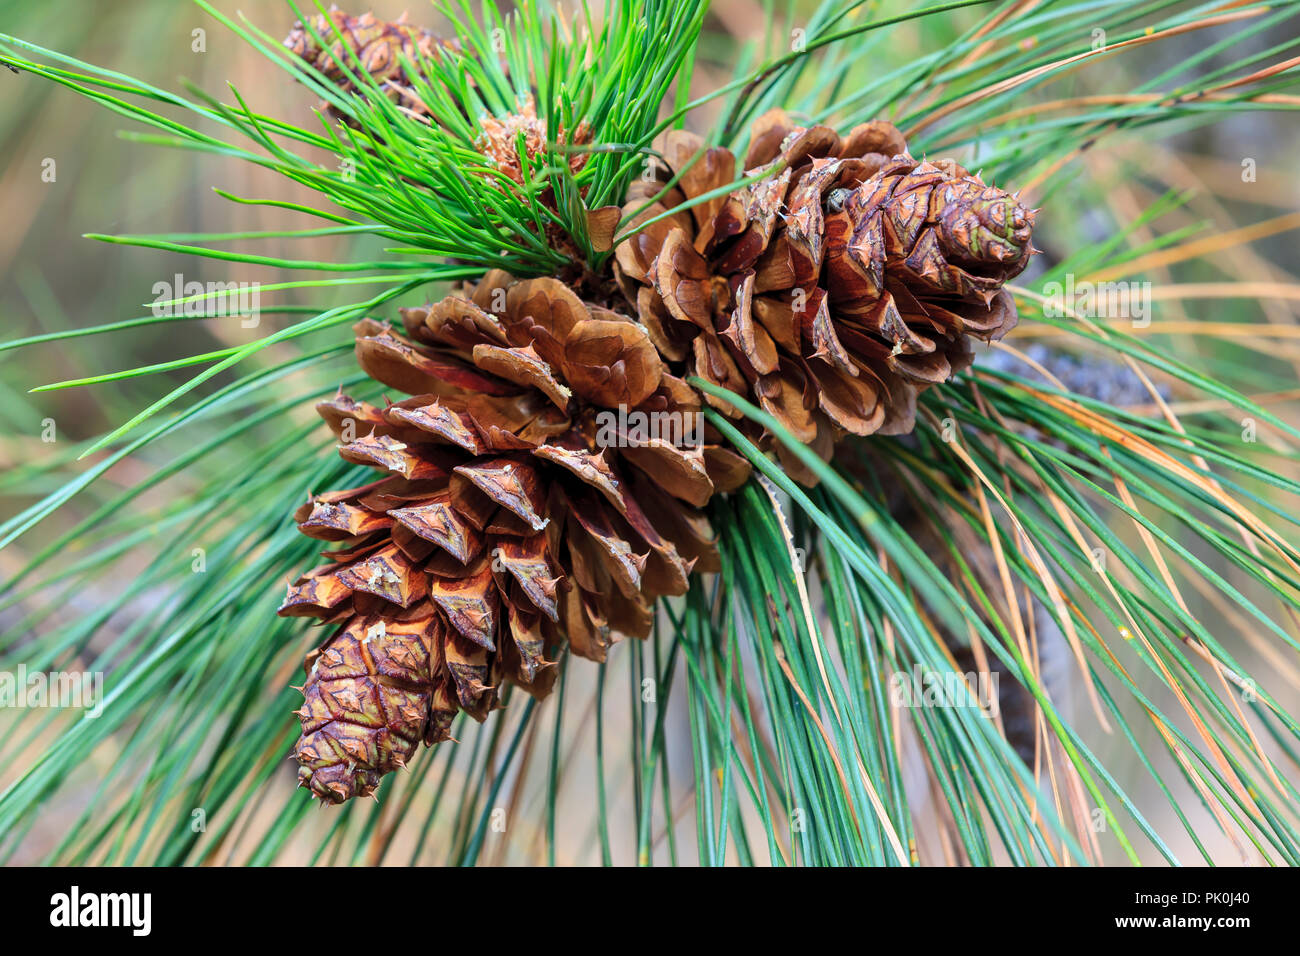 A close up of two pine cones on a tree near Cheney, Washington. - Stock Image